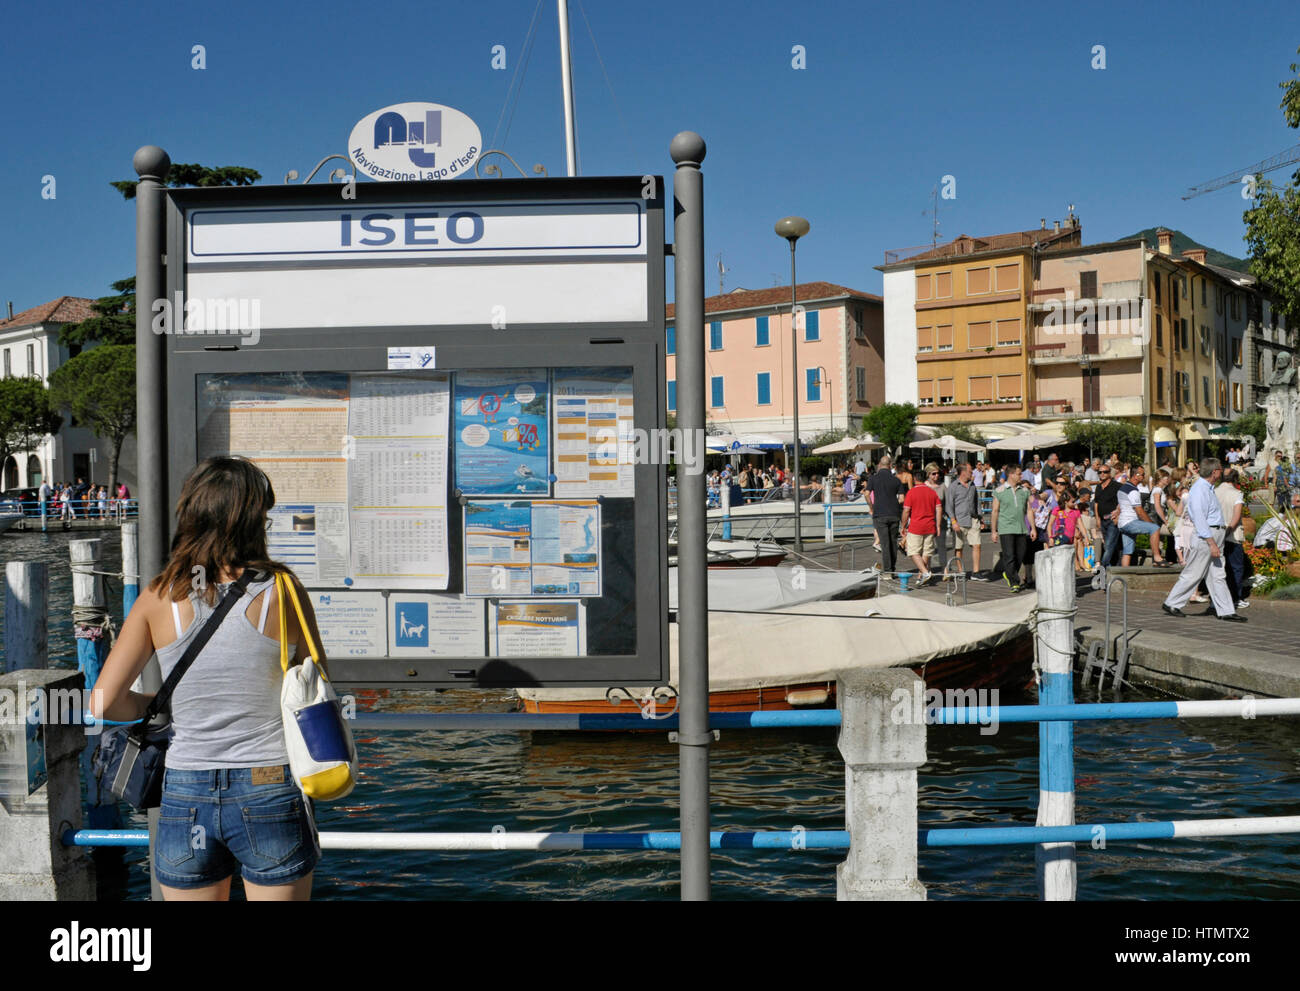 harbour in Iseo, Lake Iseo, Lombardy, Italy - Stock Image